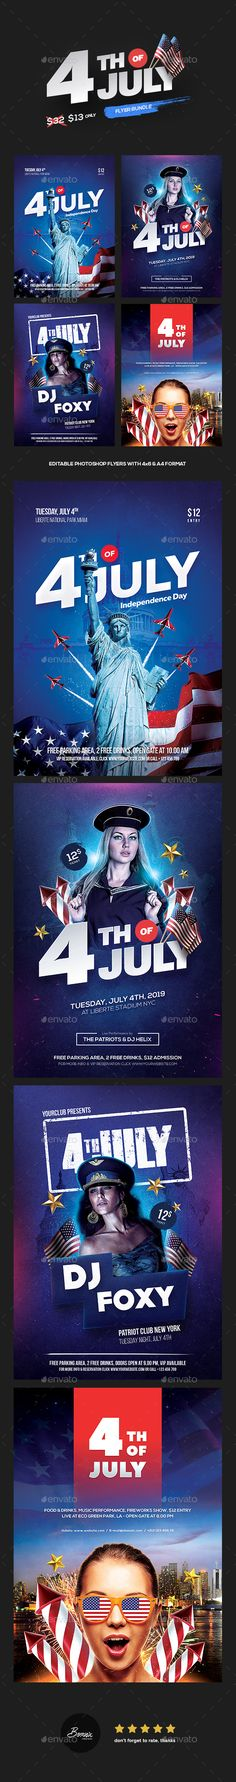 4th of July Flyer Bundle (4 in 1) — Photoshop PSD #dj #4th of july party • Download ➝ https://graphicriver.net/item/4th-of-july-flyer-bundle-4-in-1/20206598?ref=pxcr